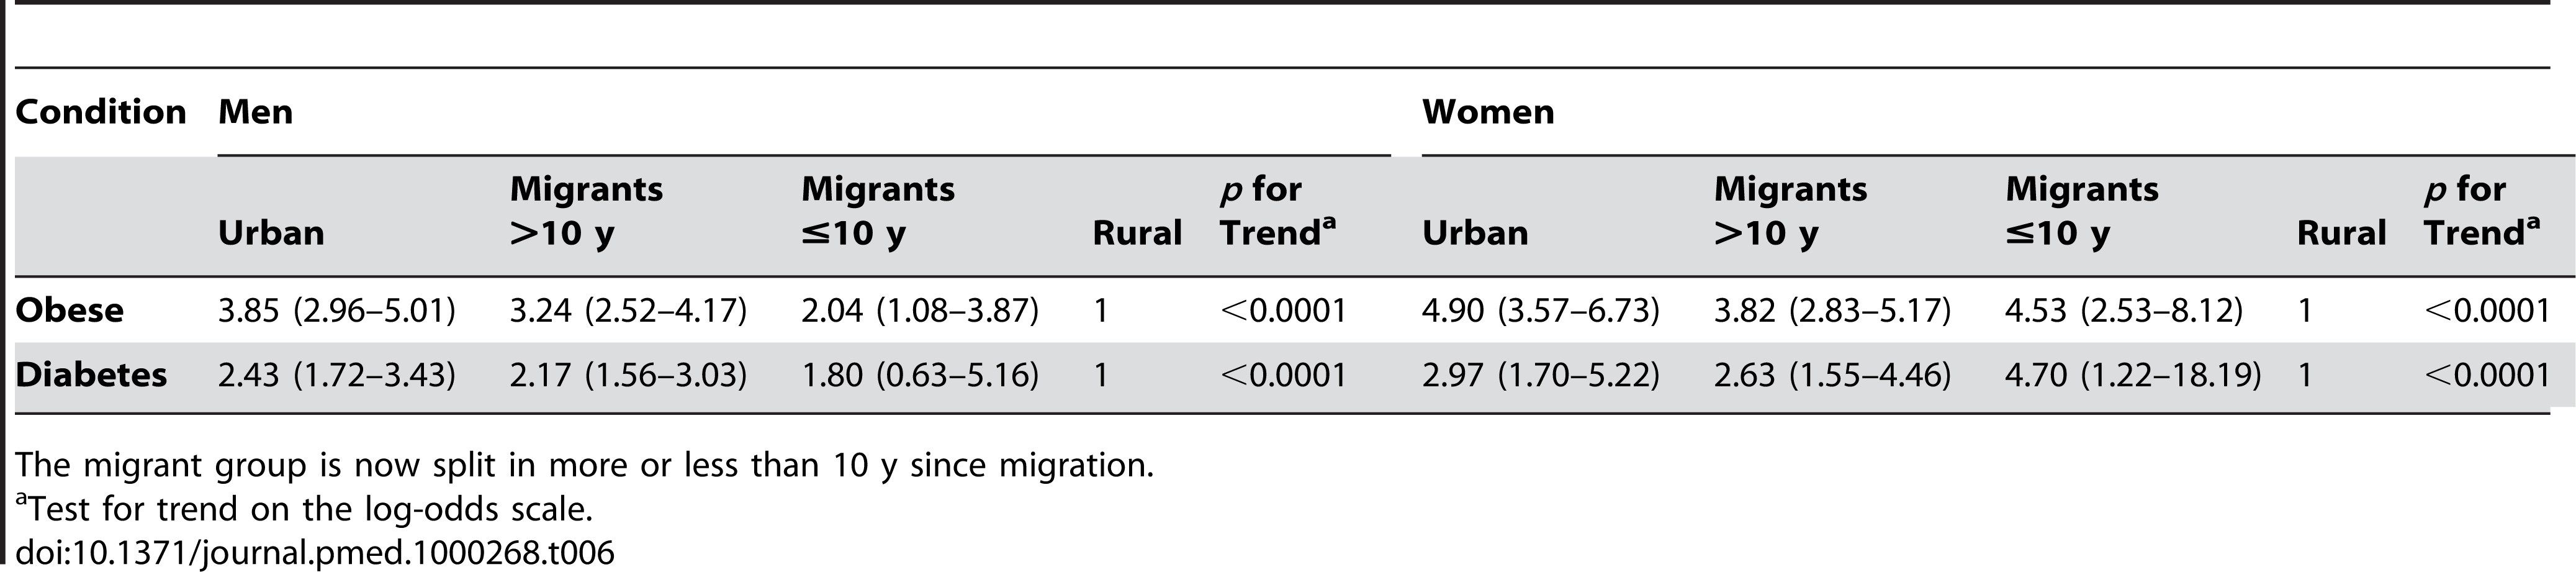 Odds ratios (95% CI) for the risk of disease in a sibling compared to a rural sibling, adjusted for occupation age, age group, and factory with an individual-specific random effect of sib-pair.